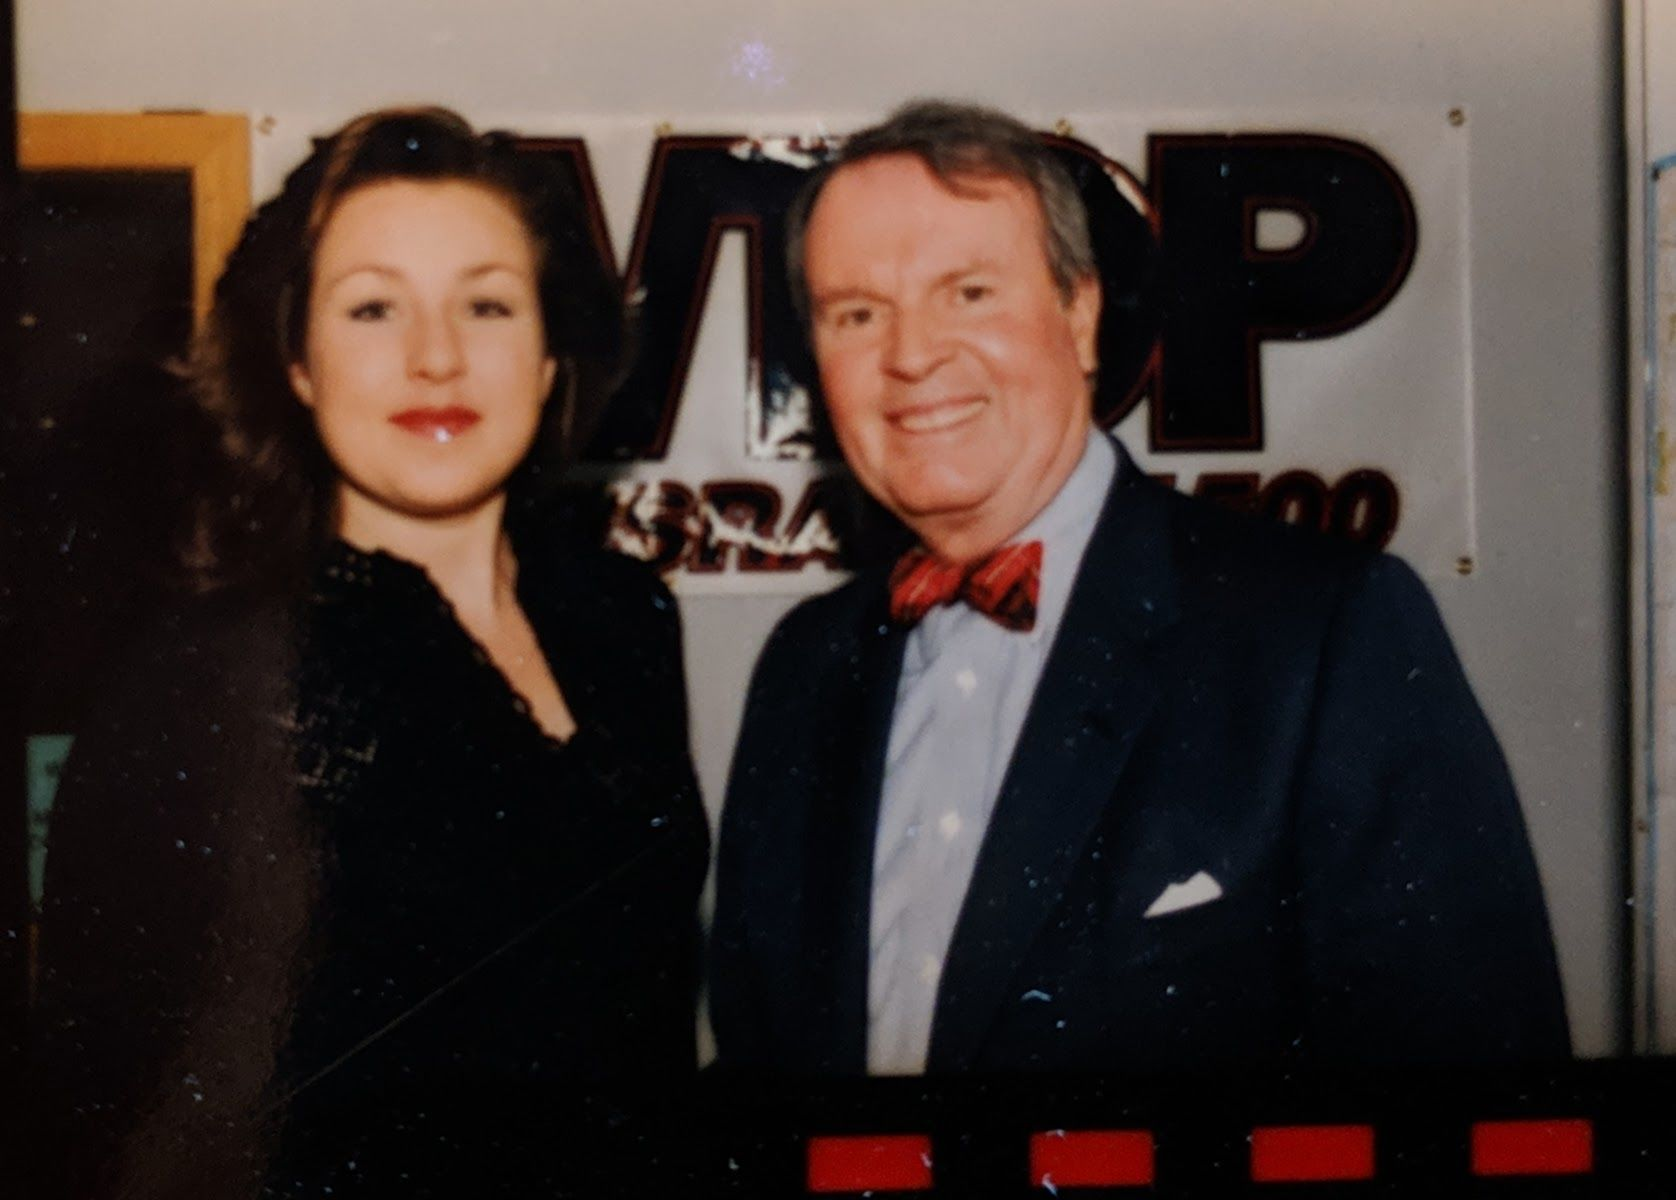 CBS's Charles Osgood (shown here with WTOP reporter Kristi King in a 1994 photo) also worked at the station, but back when the format was music. (File photo)